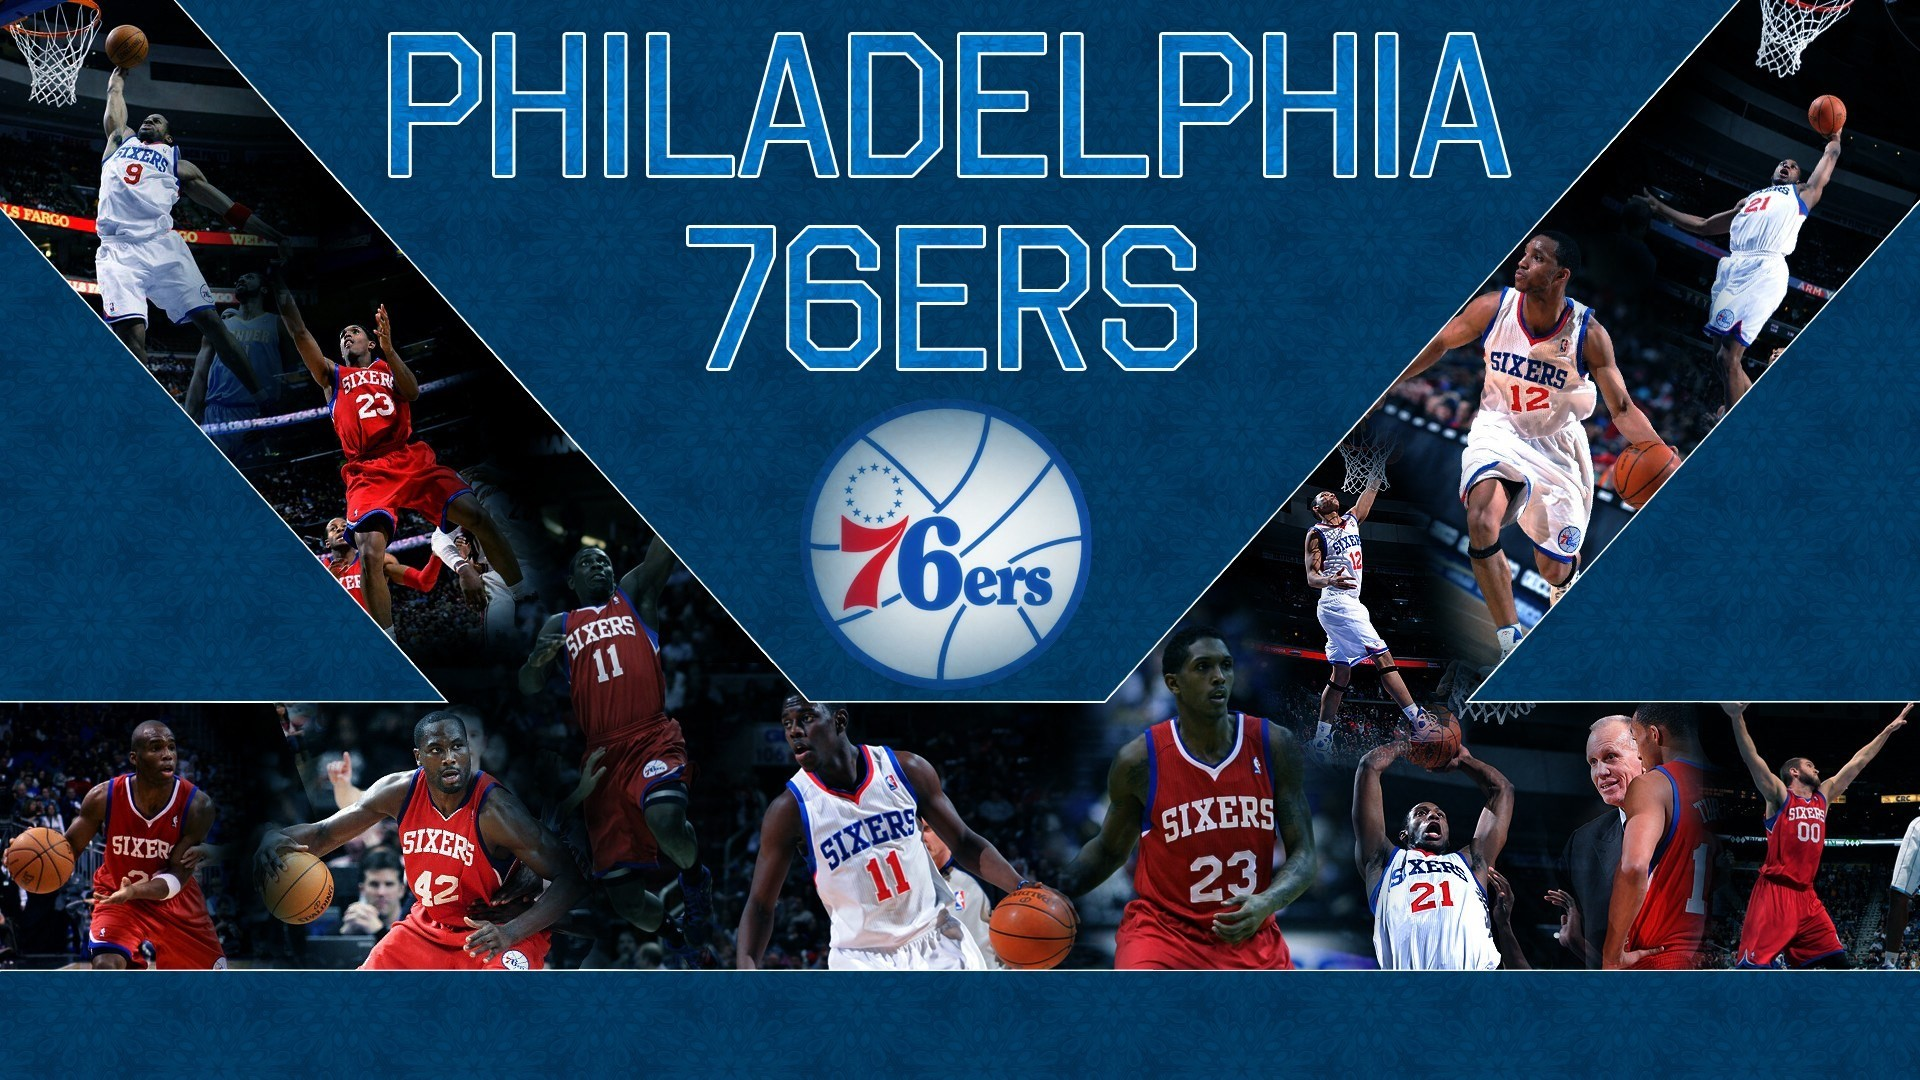 1920x1080 philadelphia 76ers wallpapers for mac desktop by Wellesley Jones  (2017-03-04)